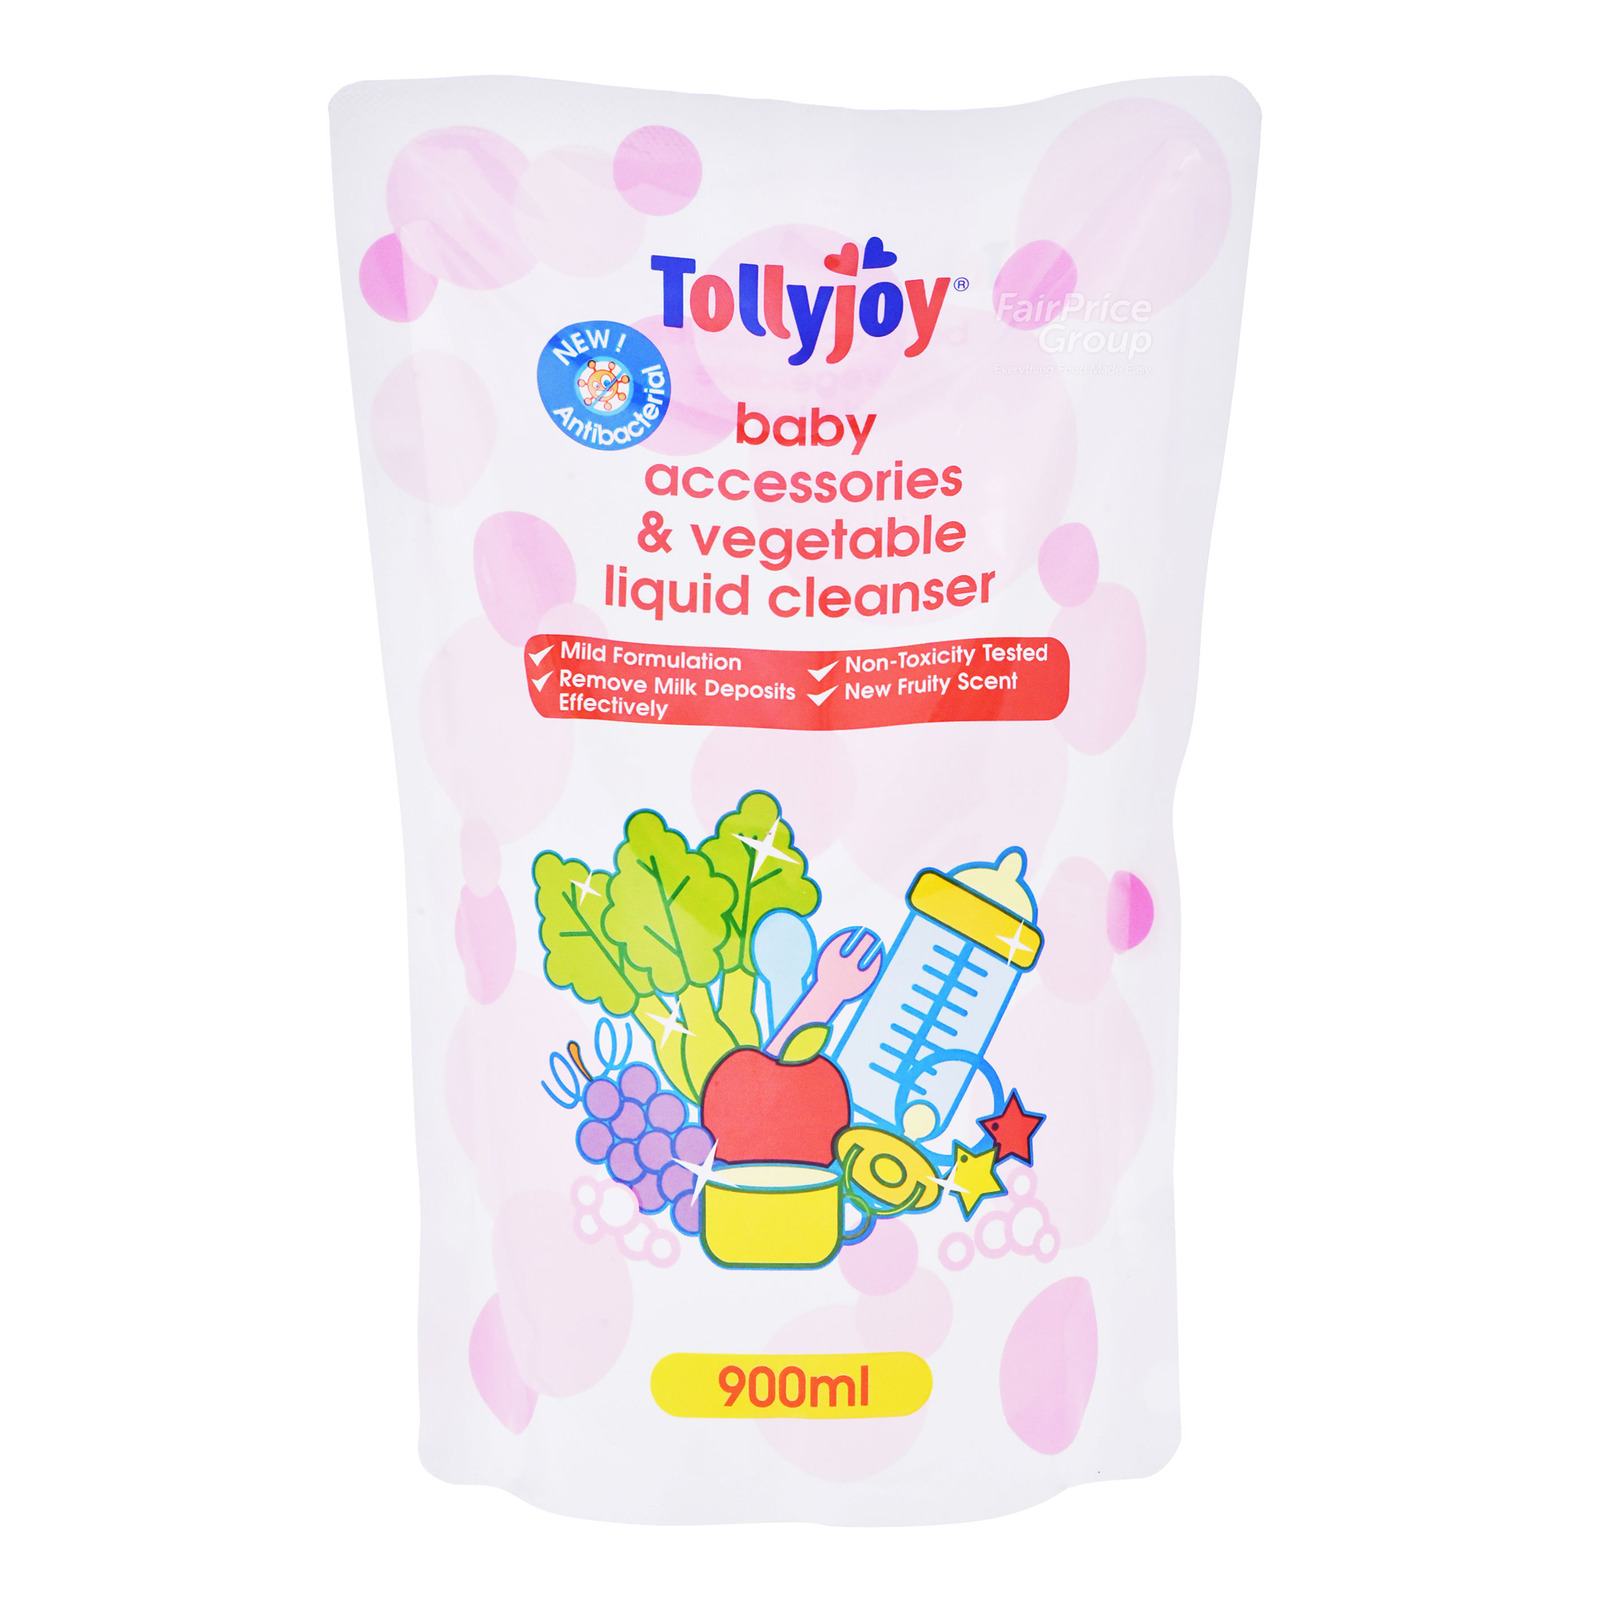 TOLLYJOY Baby Accessories & Veg Liquid Cleanser Refill - Fruity 900ml